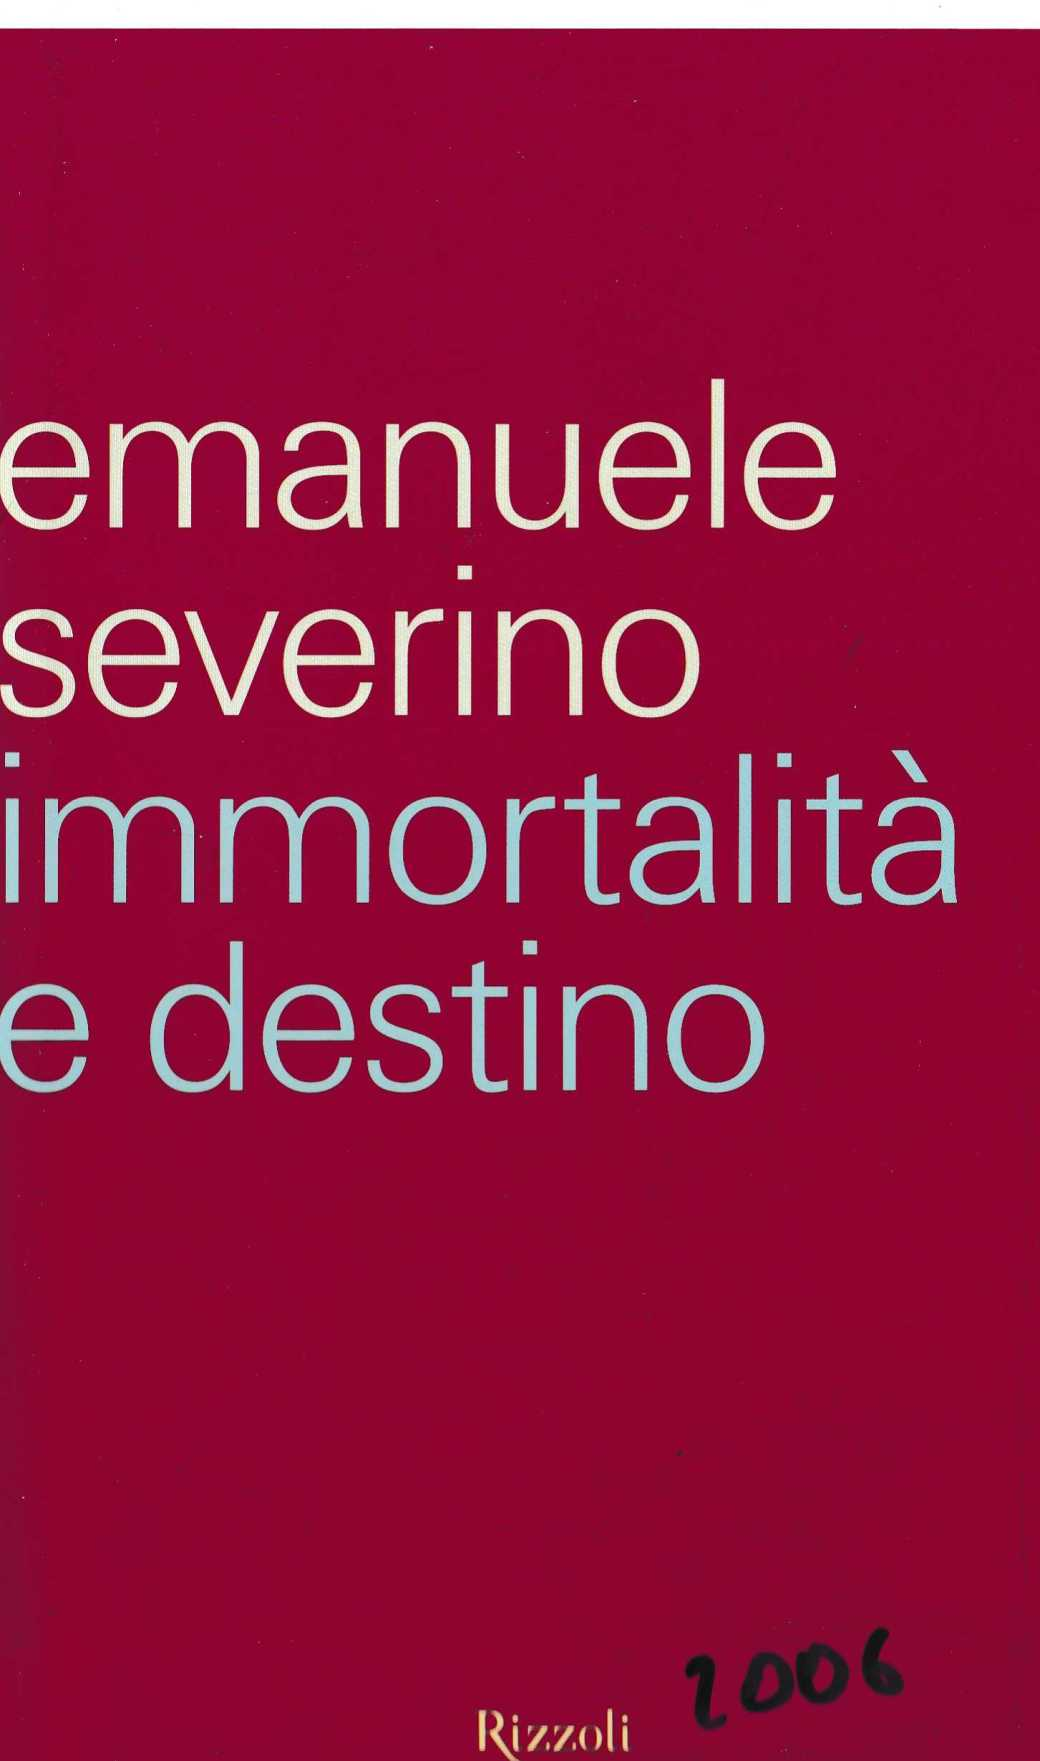 immortalitadestino4497